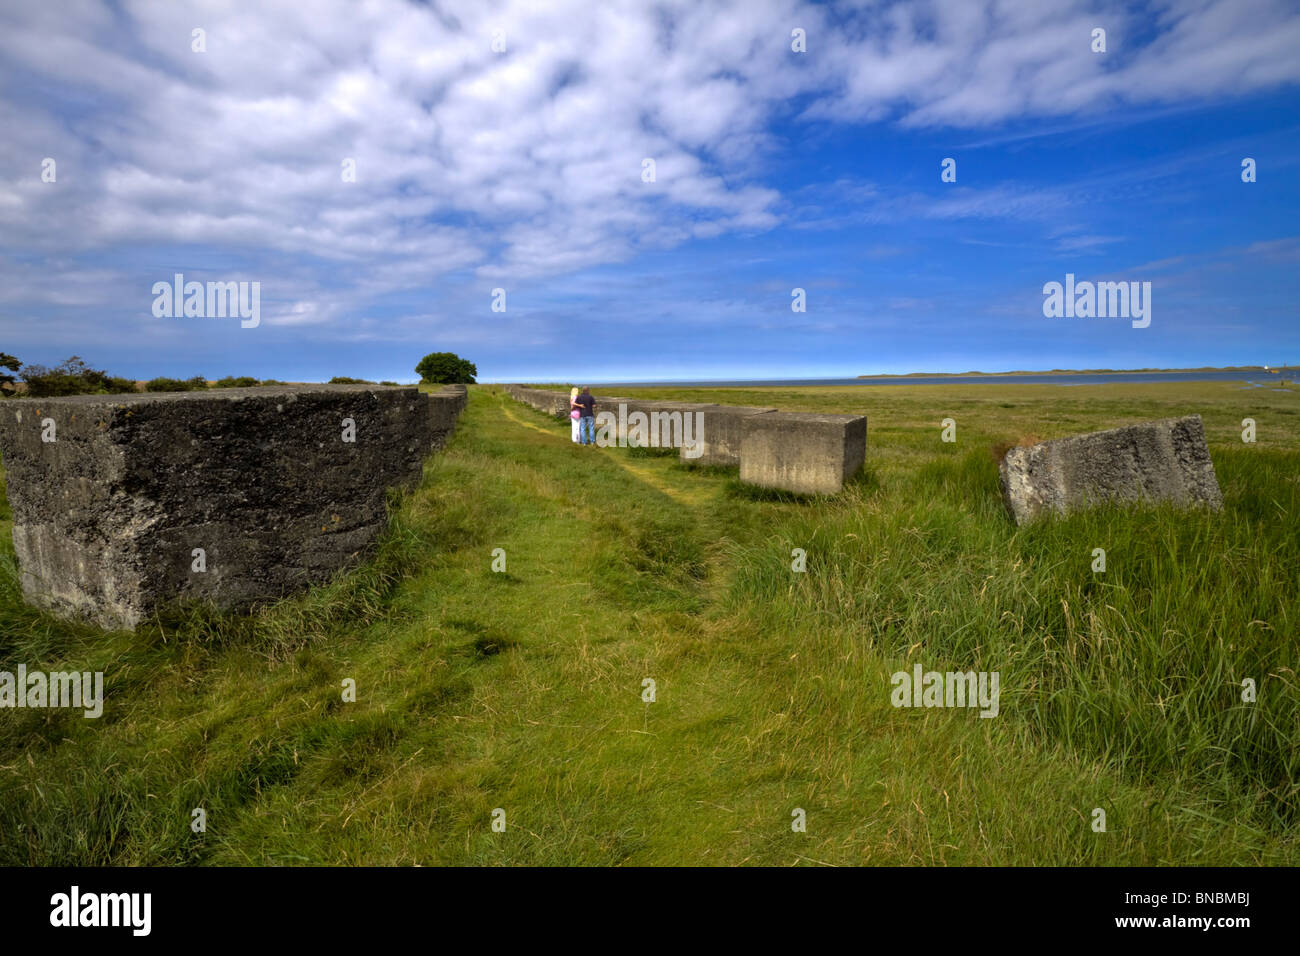 Coastal Defences in Beal, Northumberland. Large concrete blocks placed to prevent tank invasion during World War - Stock Image